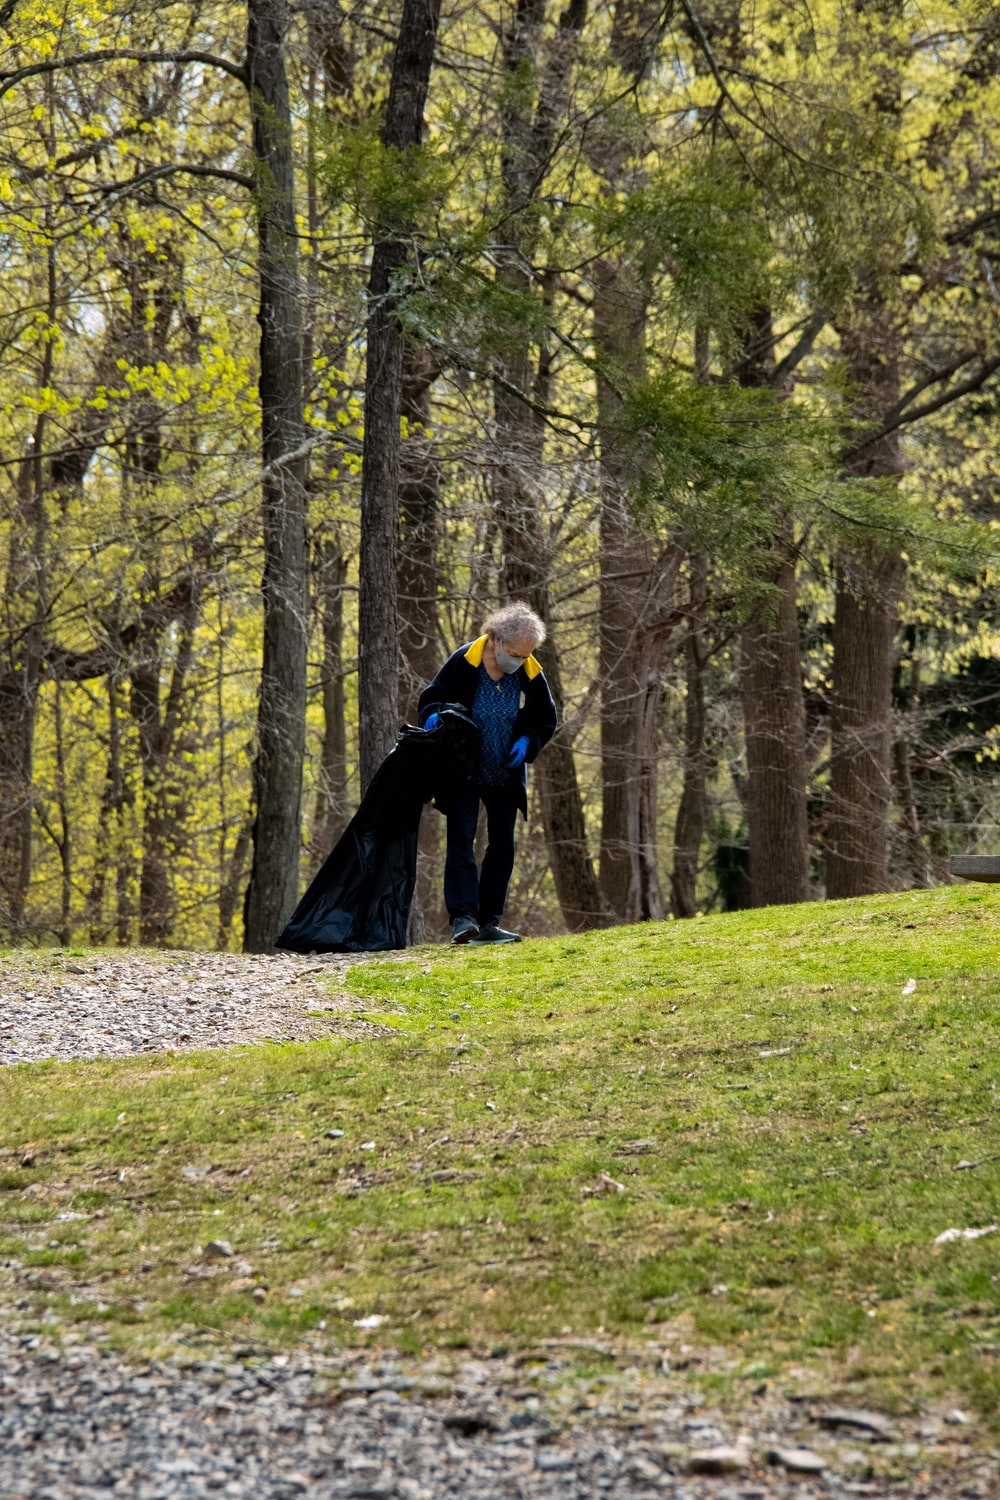 woman in blue jacket standing on green grass field surrounded by trees during daytime